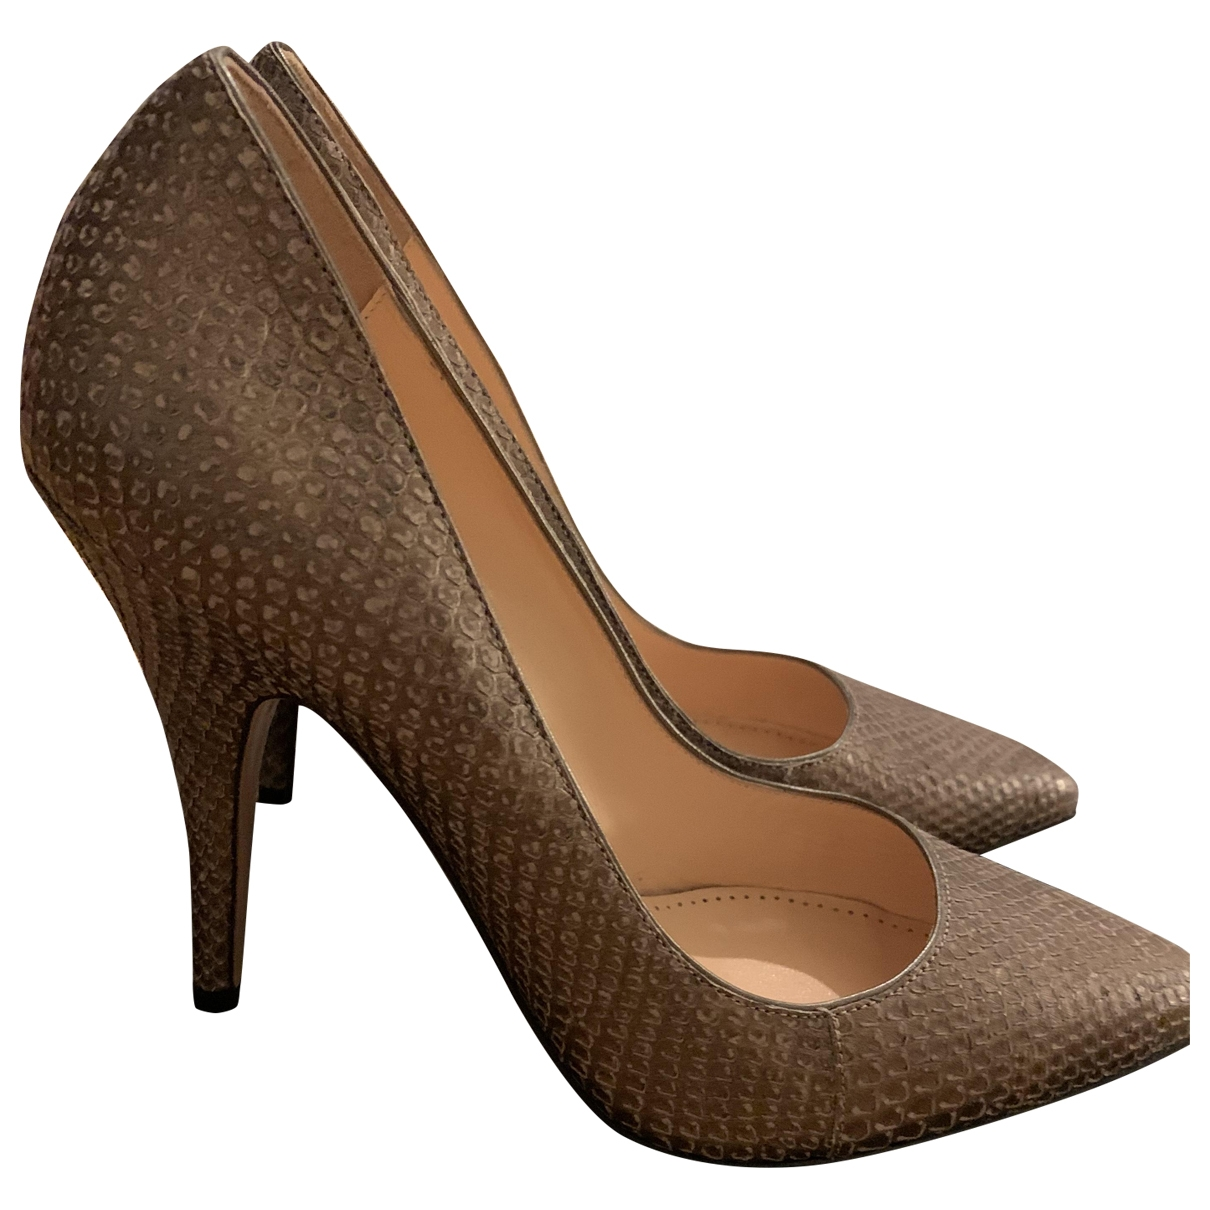 Bally \N Pumps in  Beige Leder